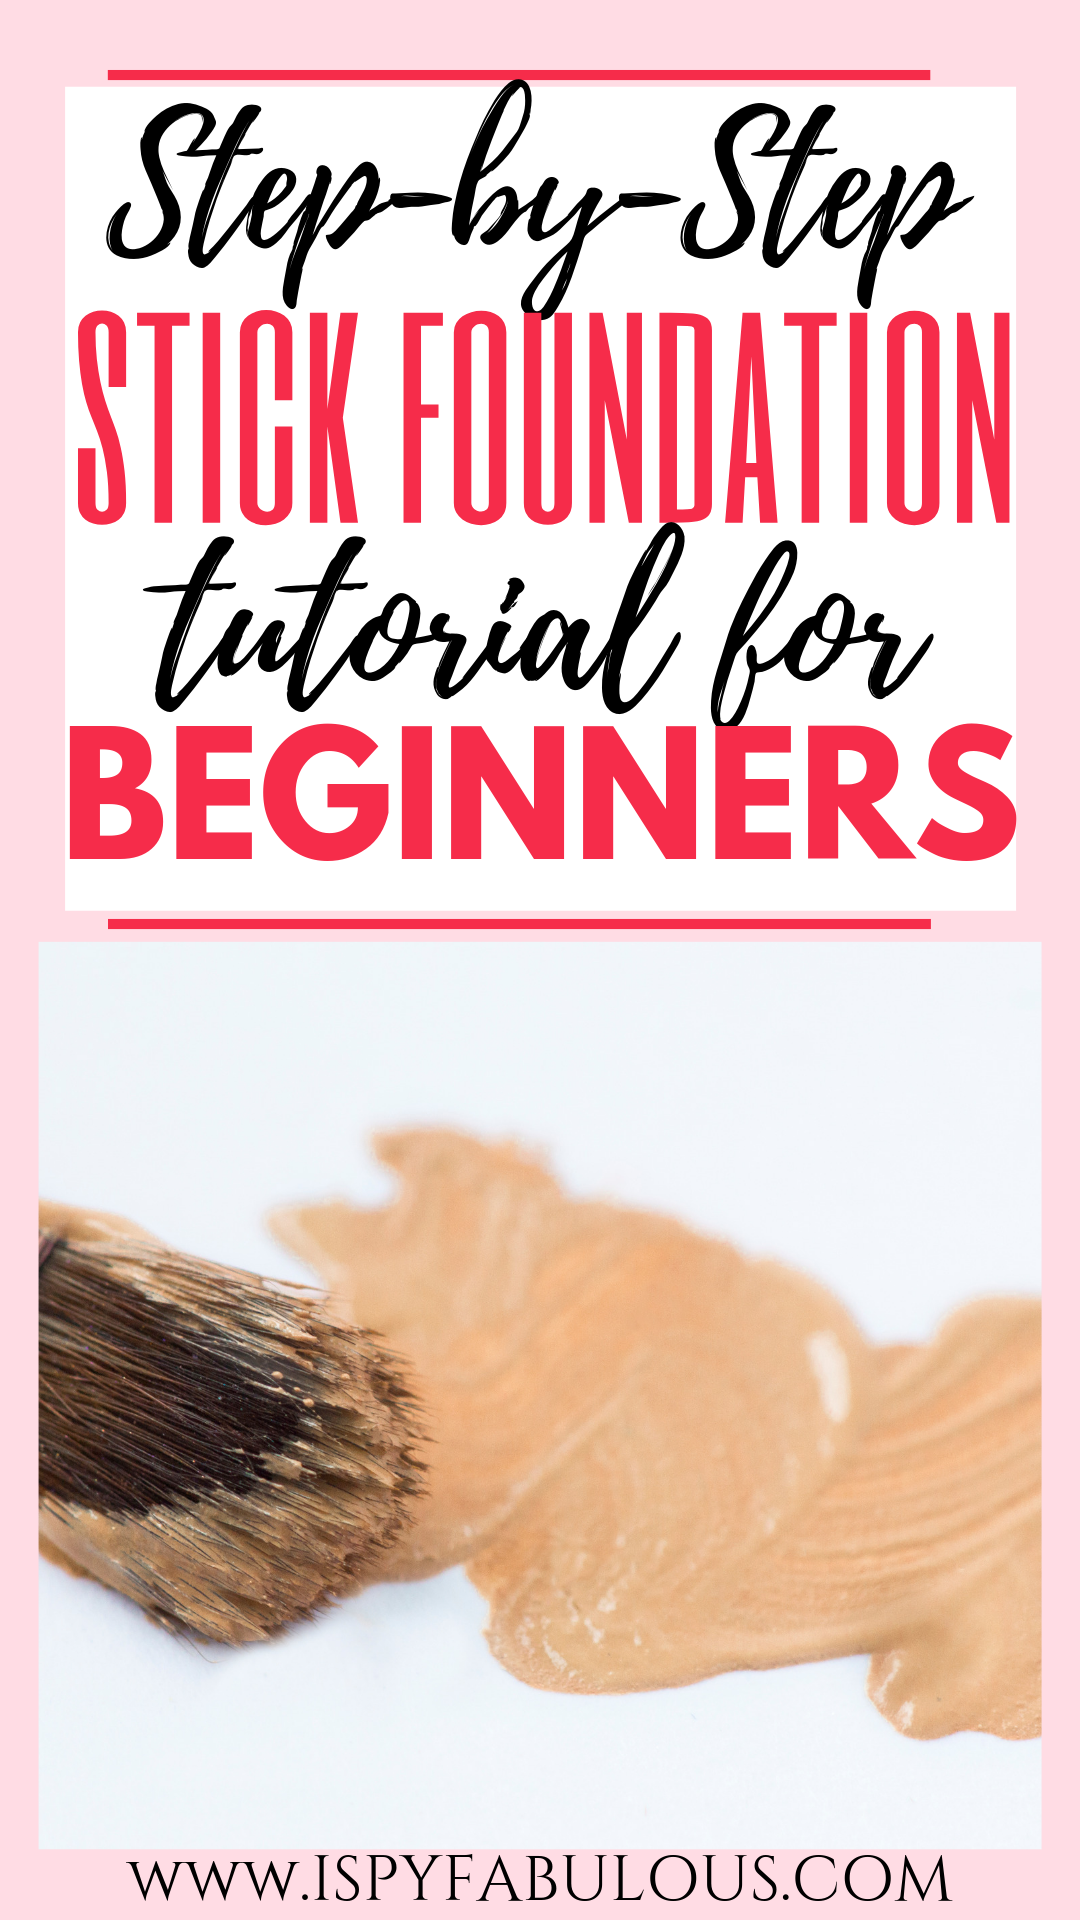 Makeup Classes For Beginners You Never Ever Want To Miss